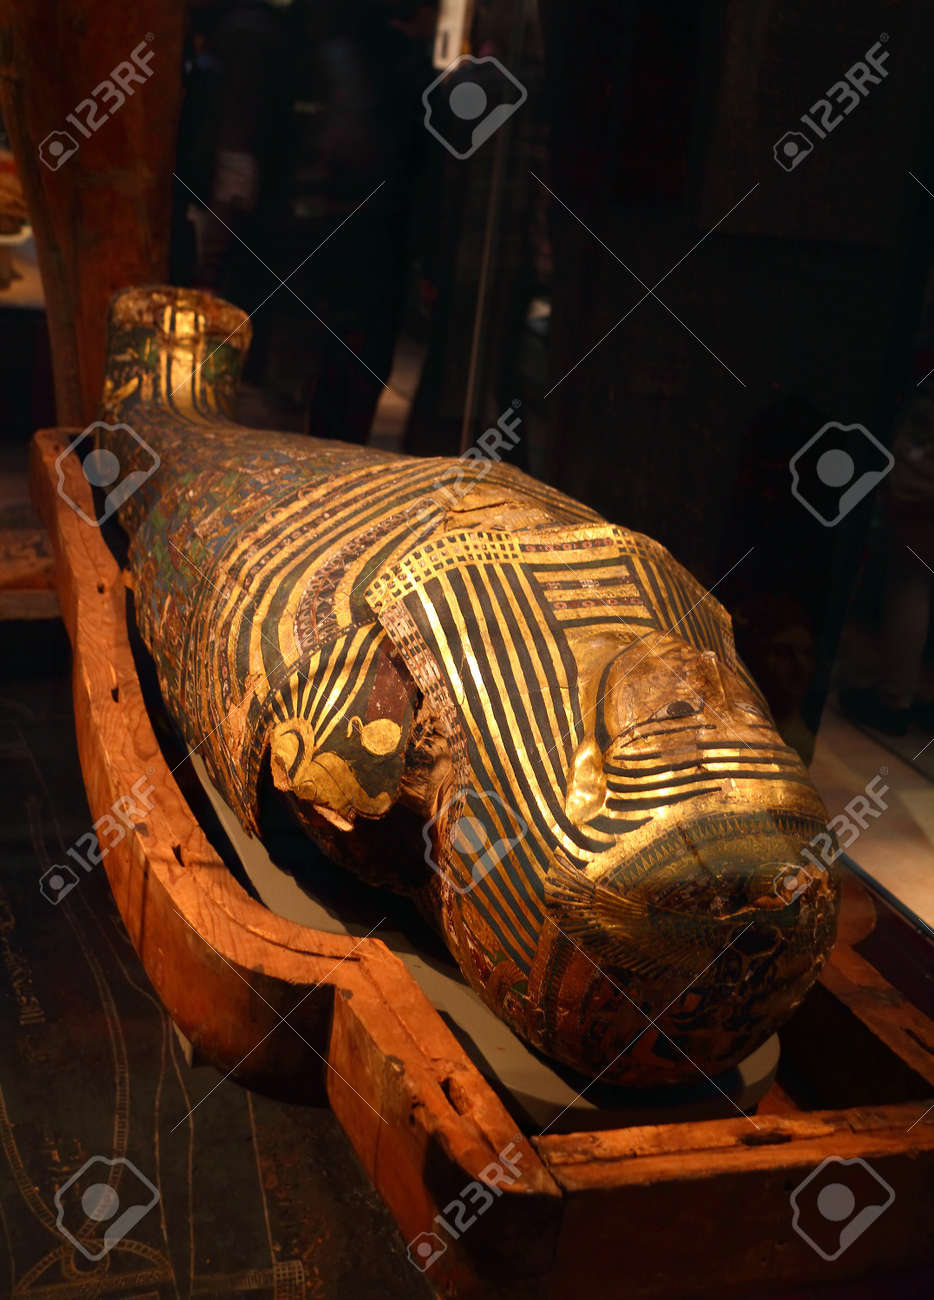 Egyptian Sarcophagus in the British Museum in London, England - 16152236